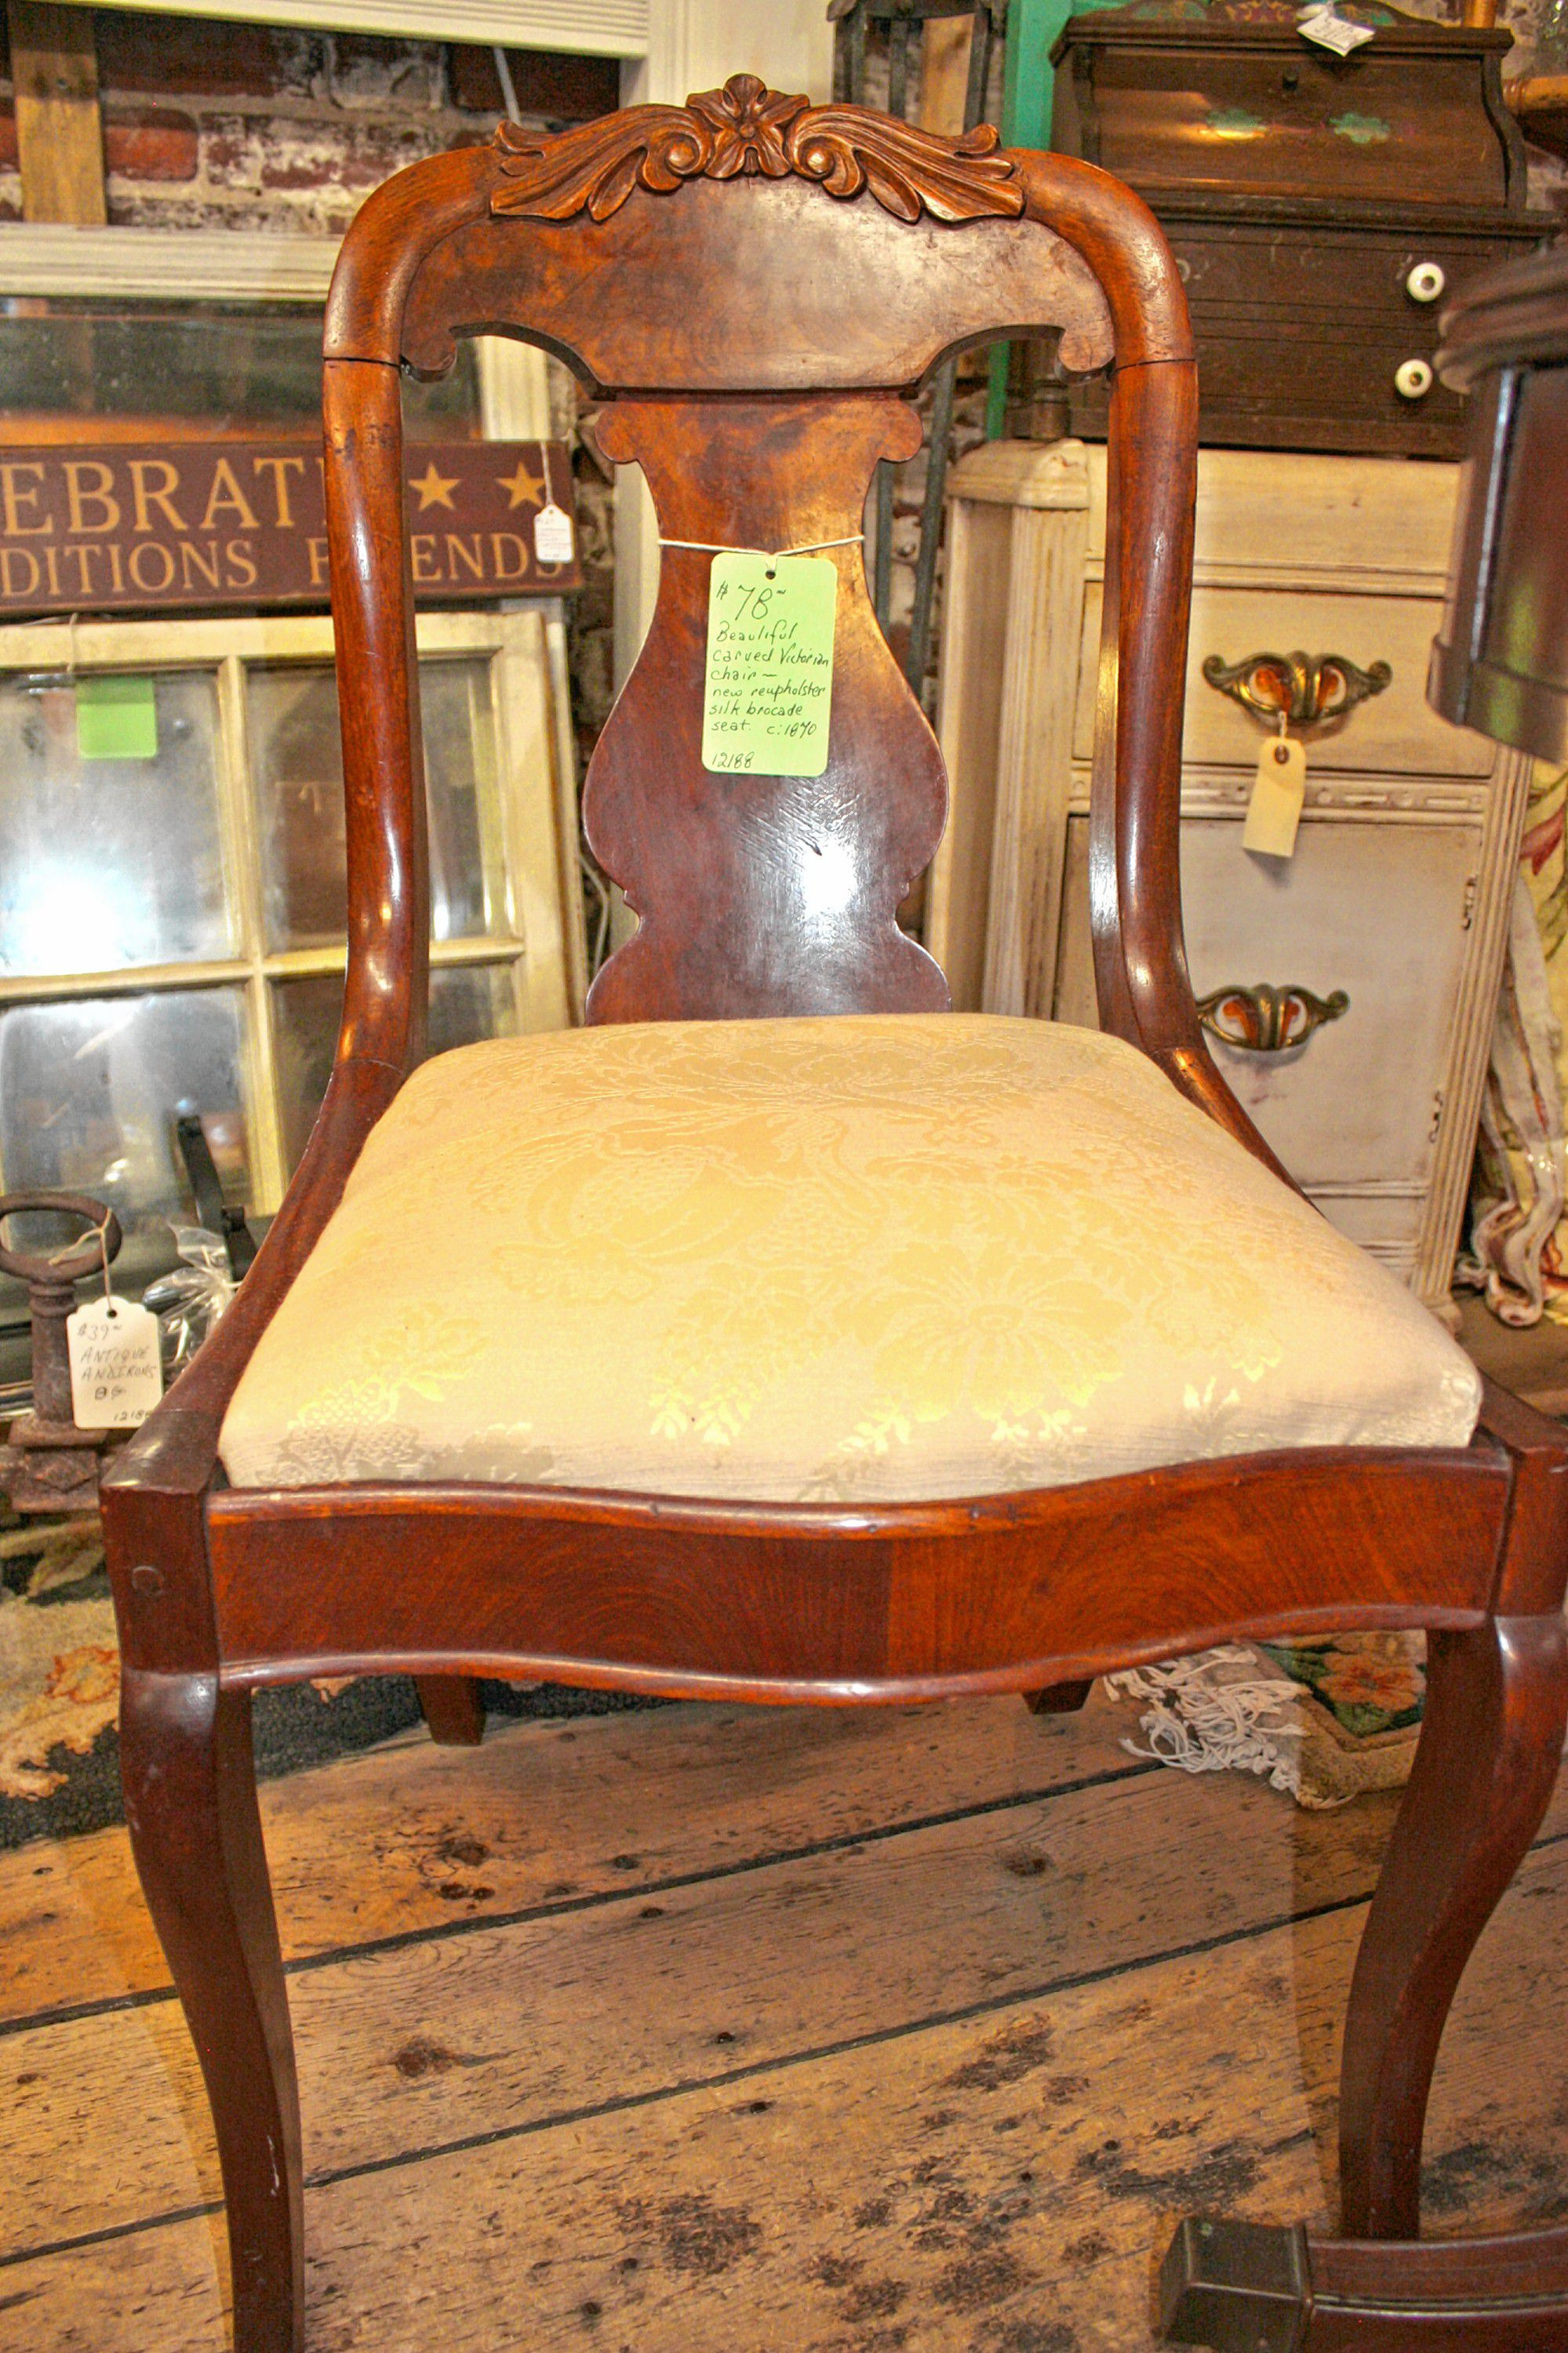 Where to Find Antique Furniture New Ever Wonder What Actually Makes An Antique An Antique We